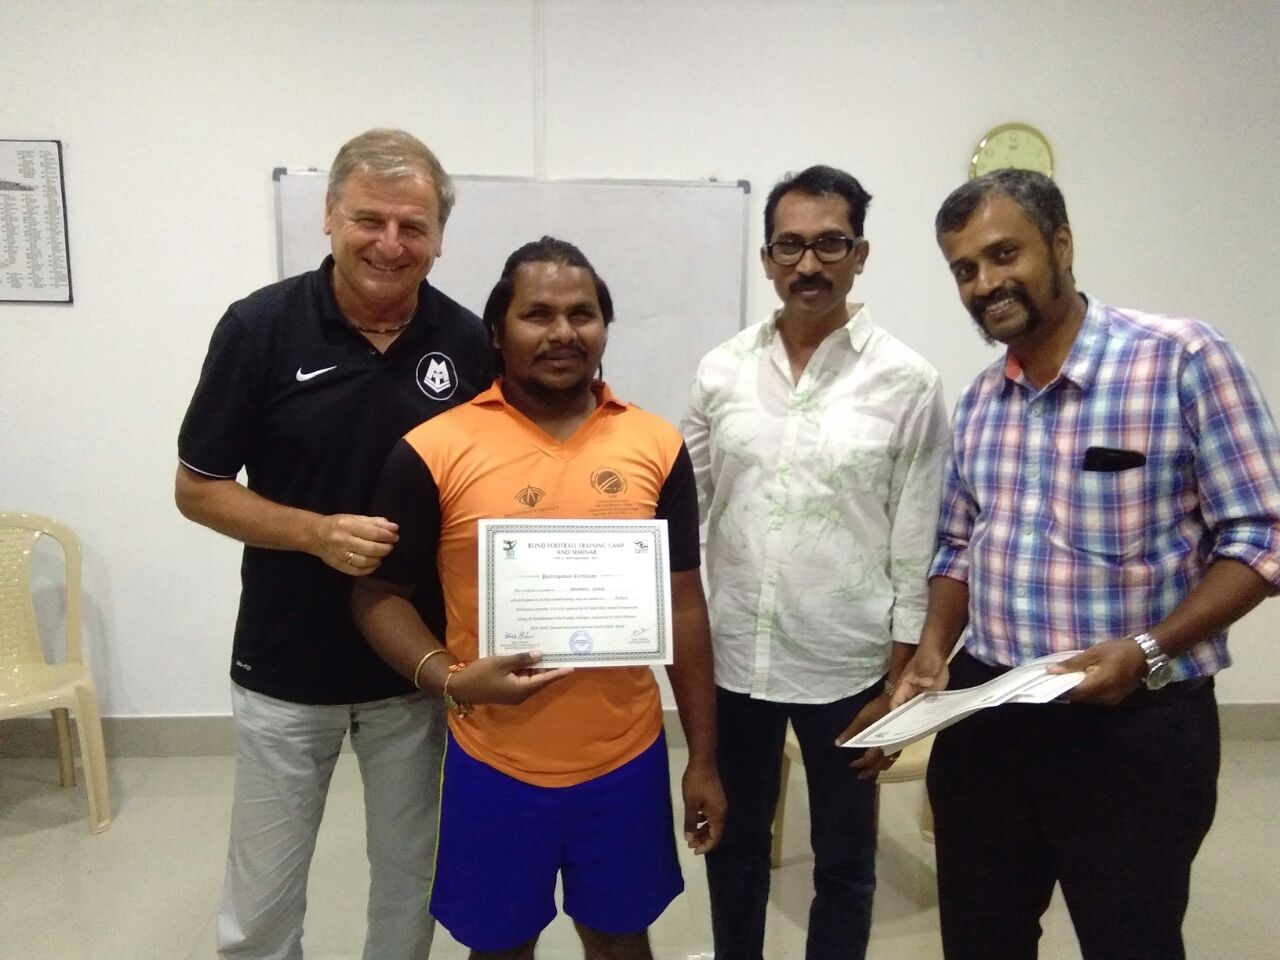 giving training certificate to students by Ulrich Pfisterer with mc roy and sunil j mathew